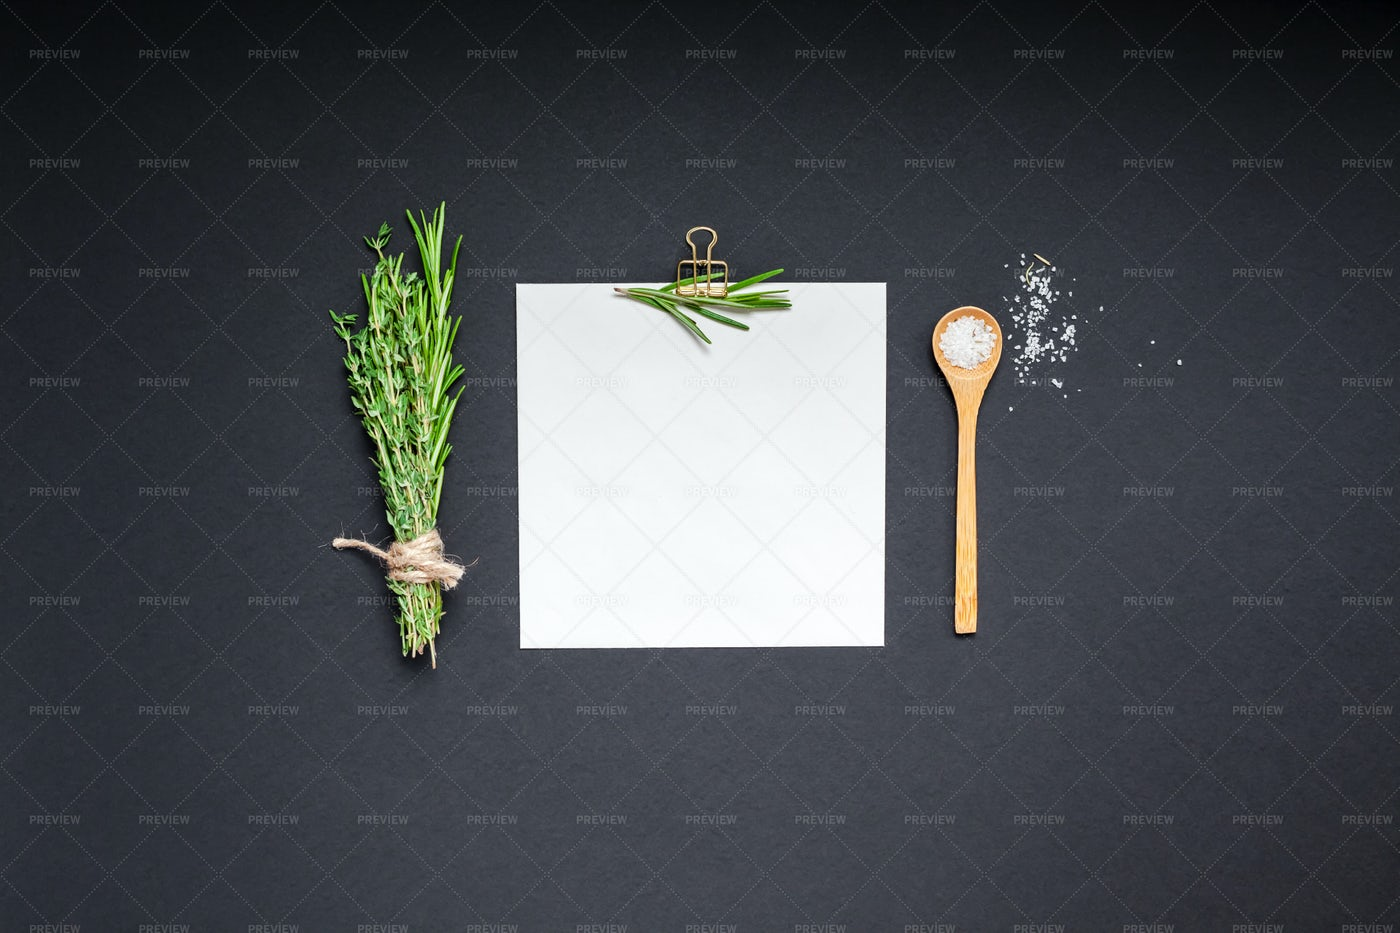 Notepad Page With Greens And Herbs: Stock Photos